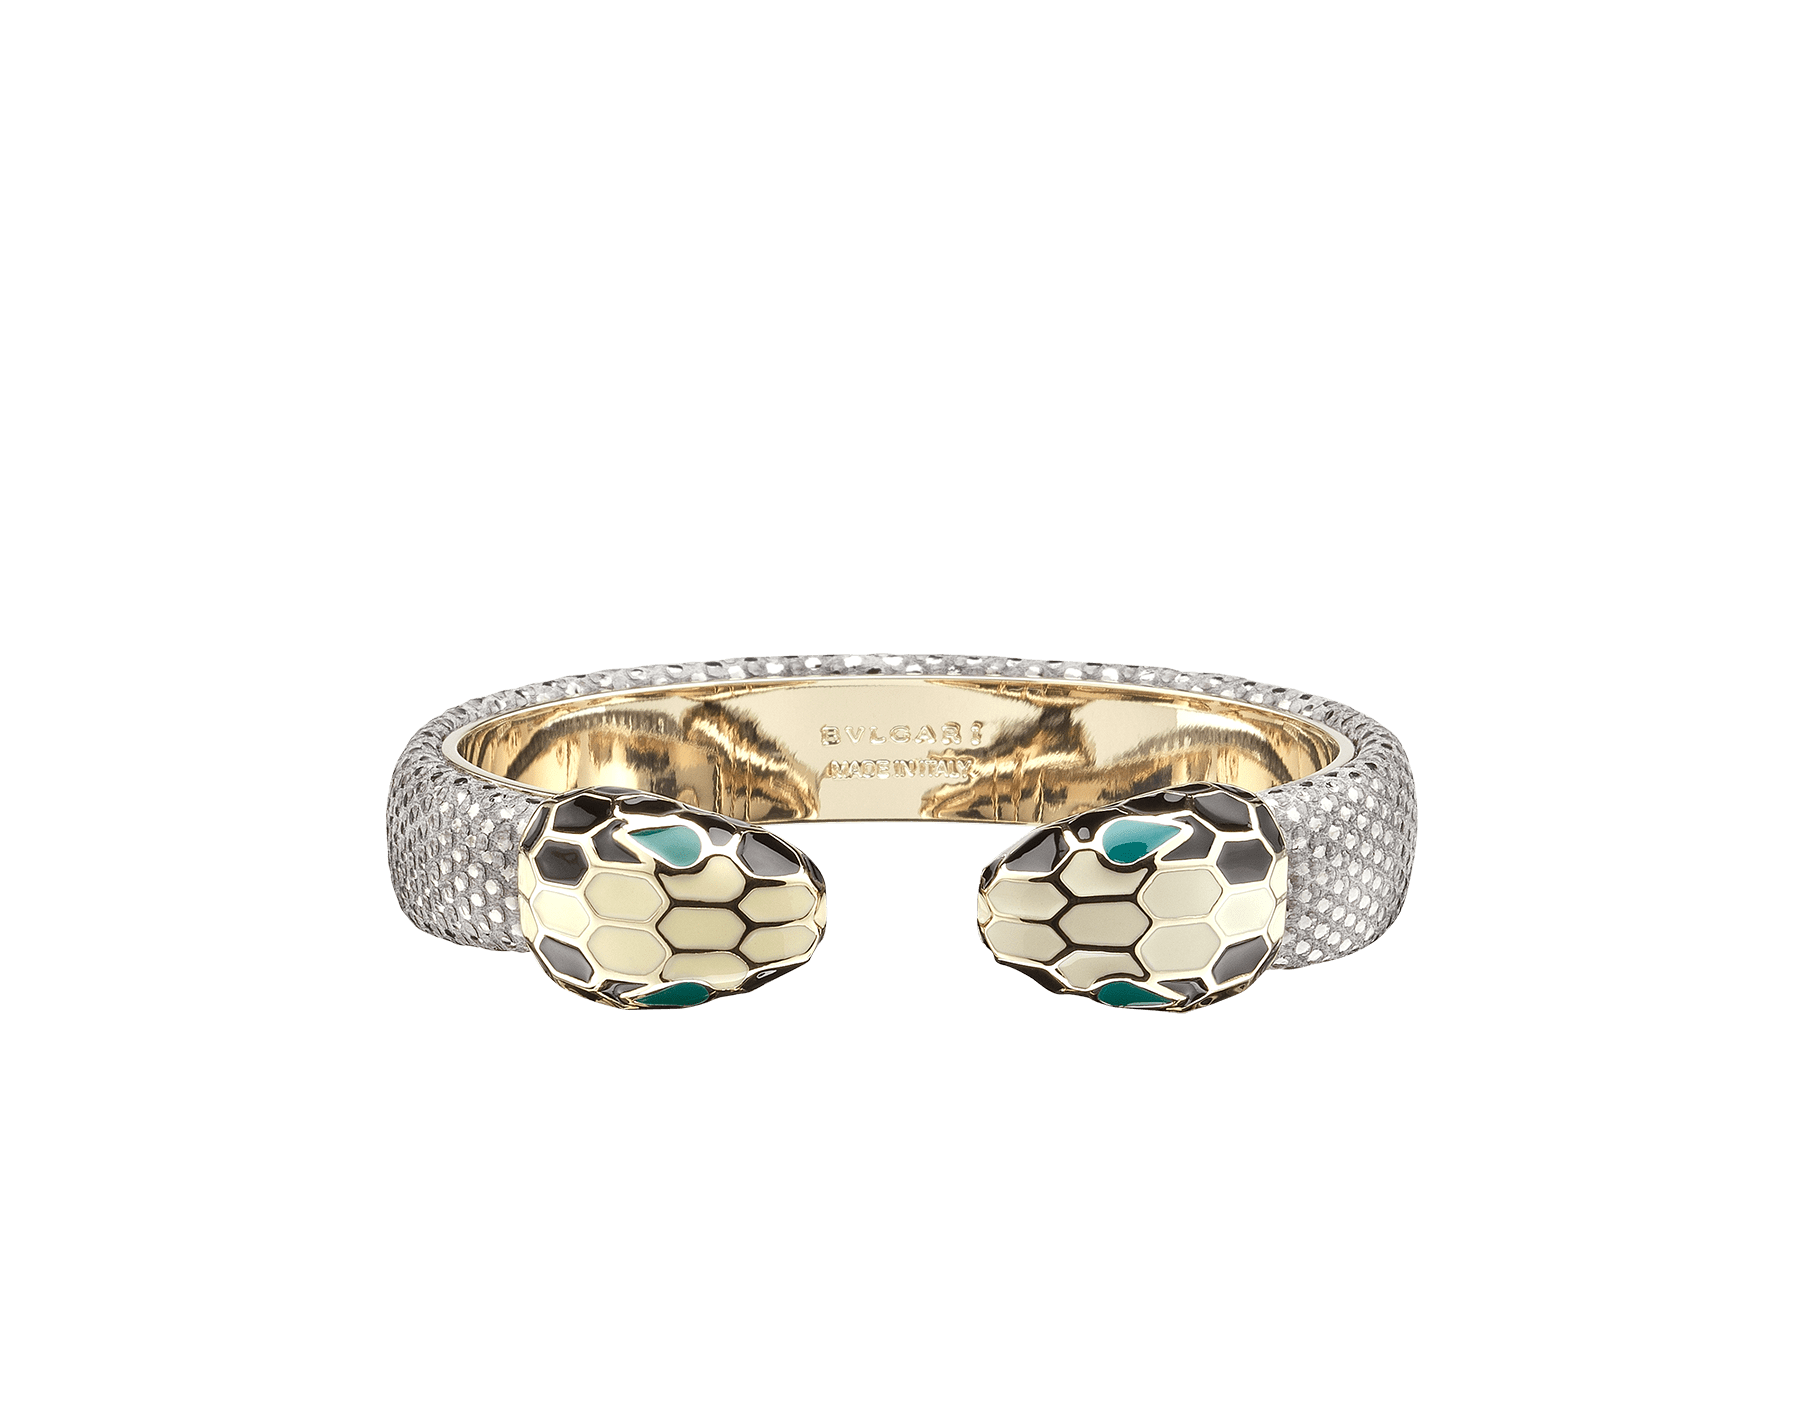 Bracelet in silver metallic karung skin with iconic contraire brass light gold plated Serpenti heads motif in black and white enamel, with green enamel eyes. 285644 image 1